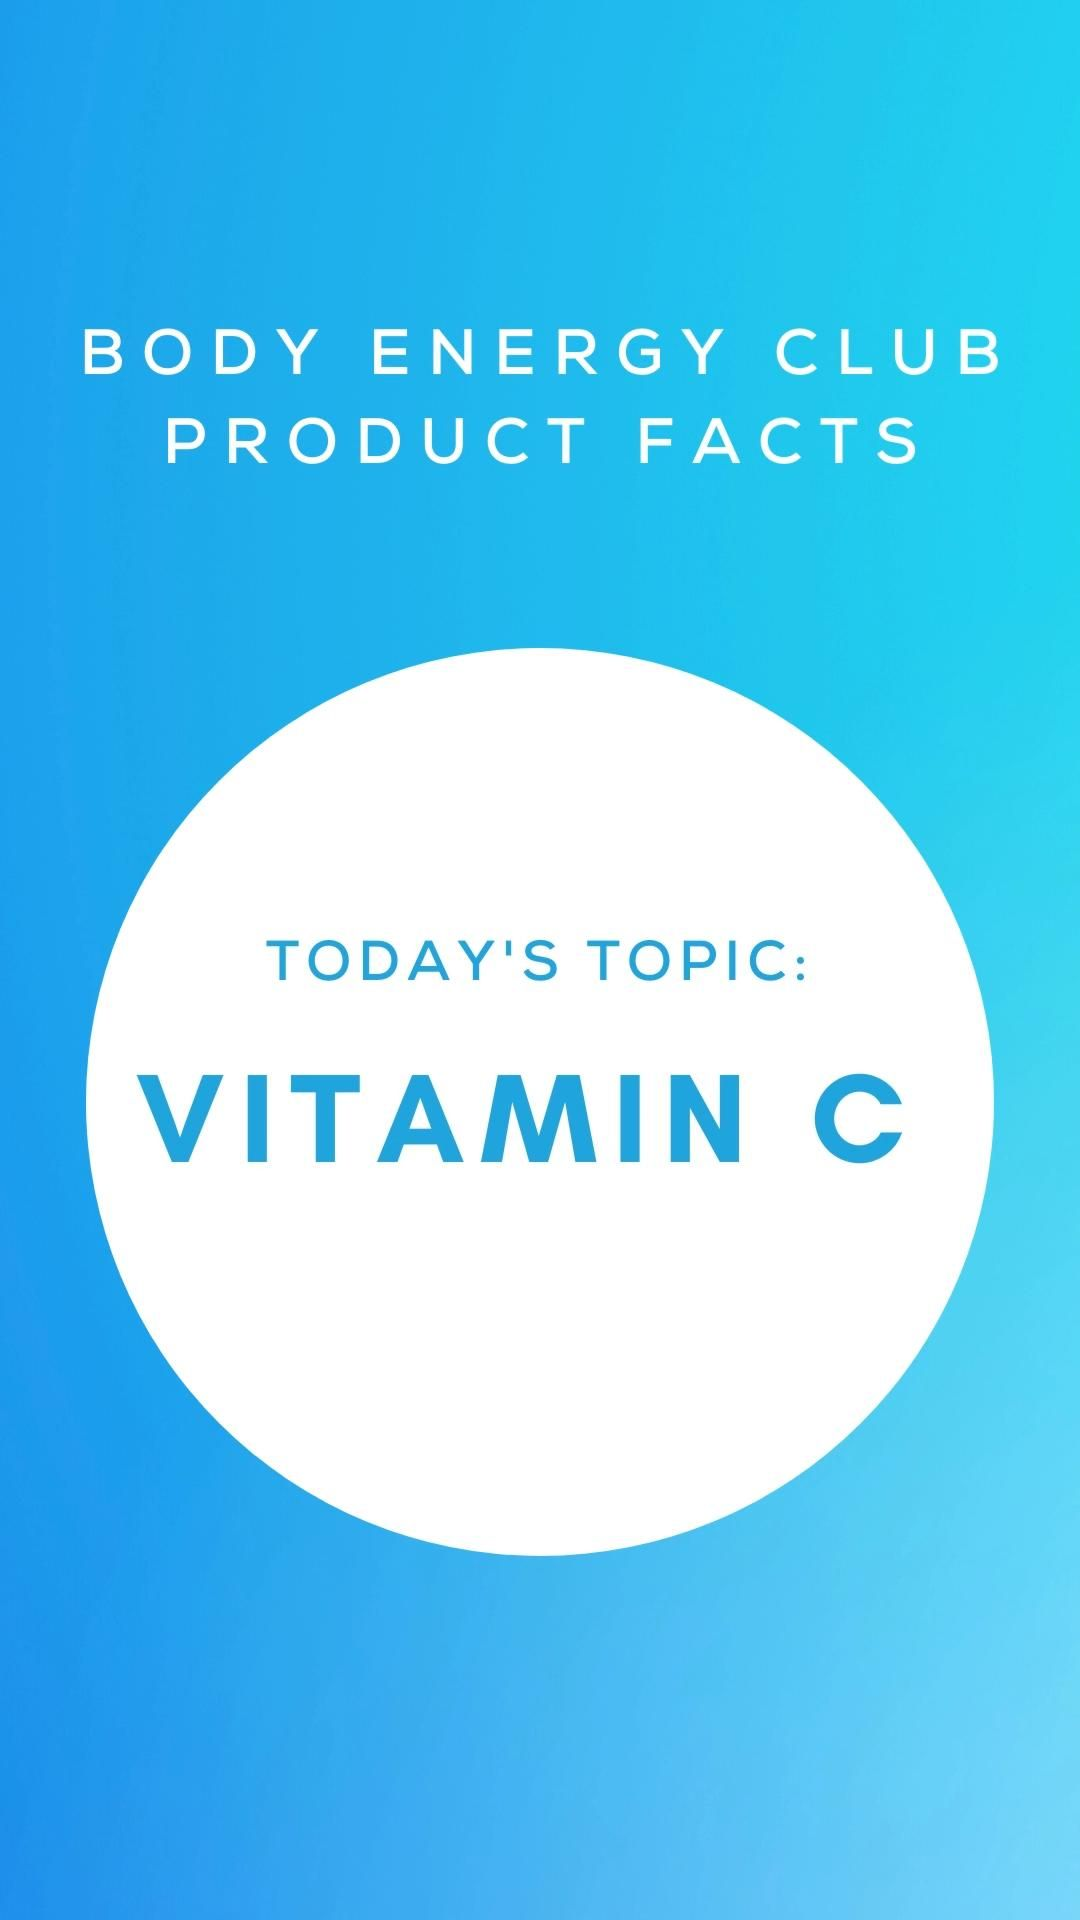 Product Facts - Vitamin C